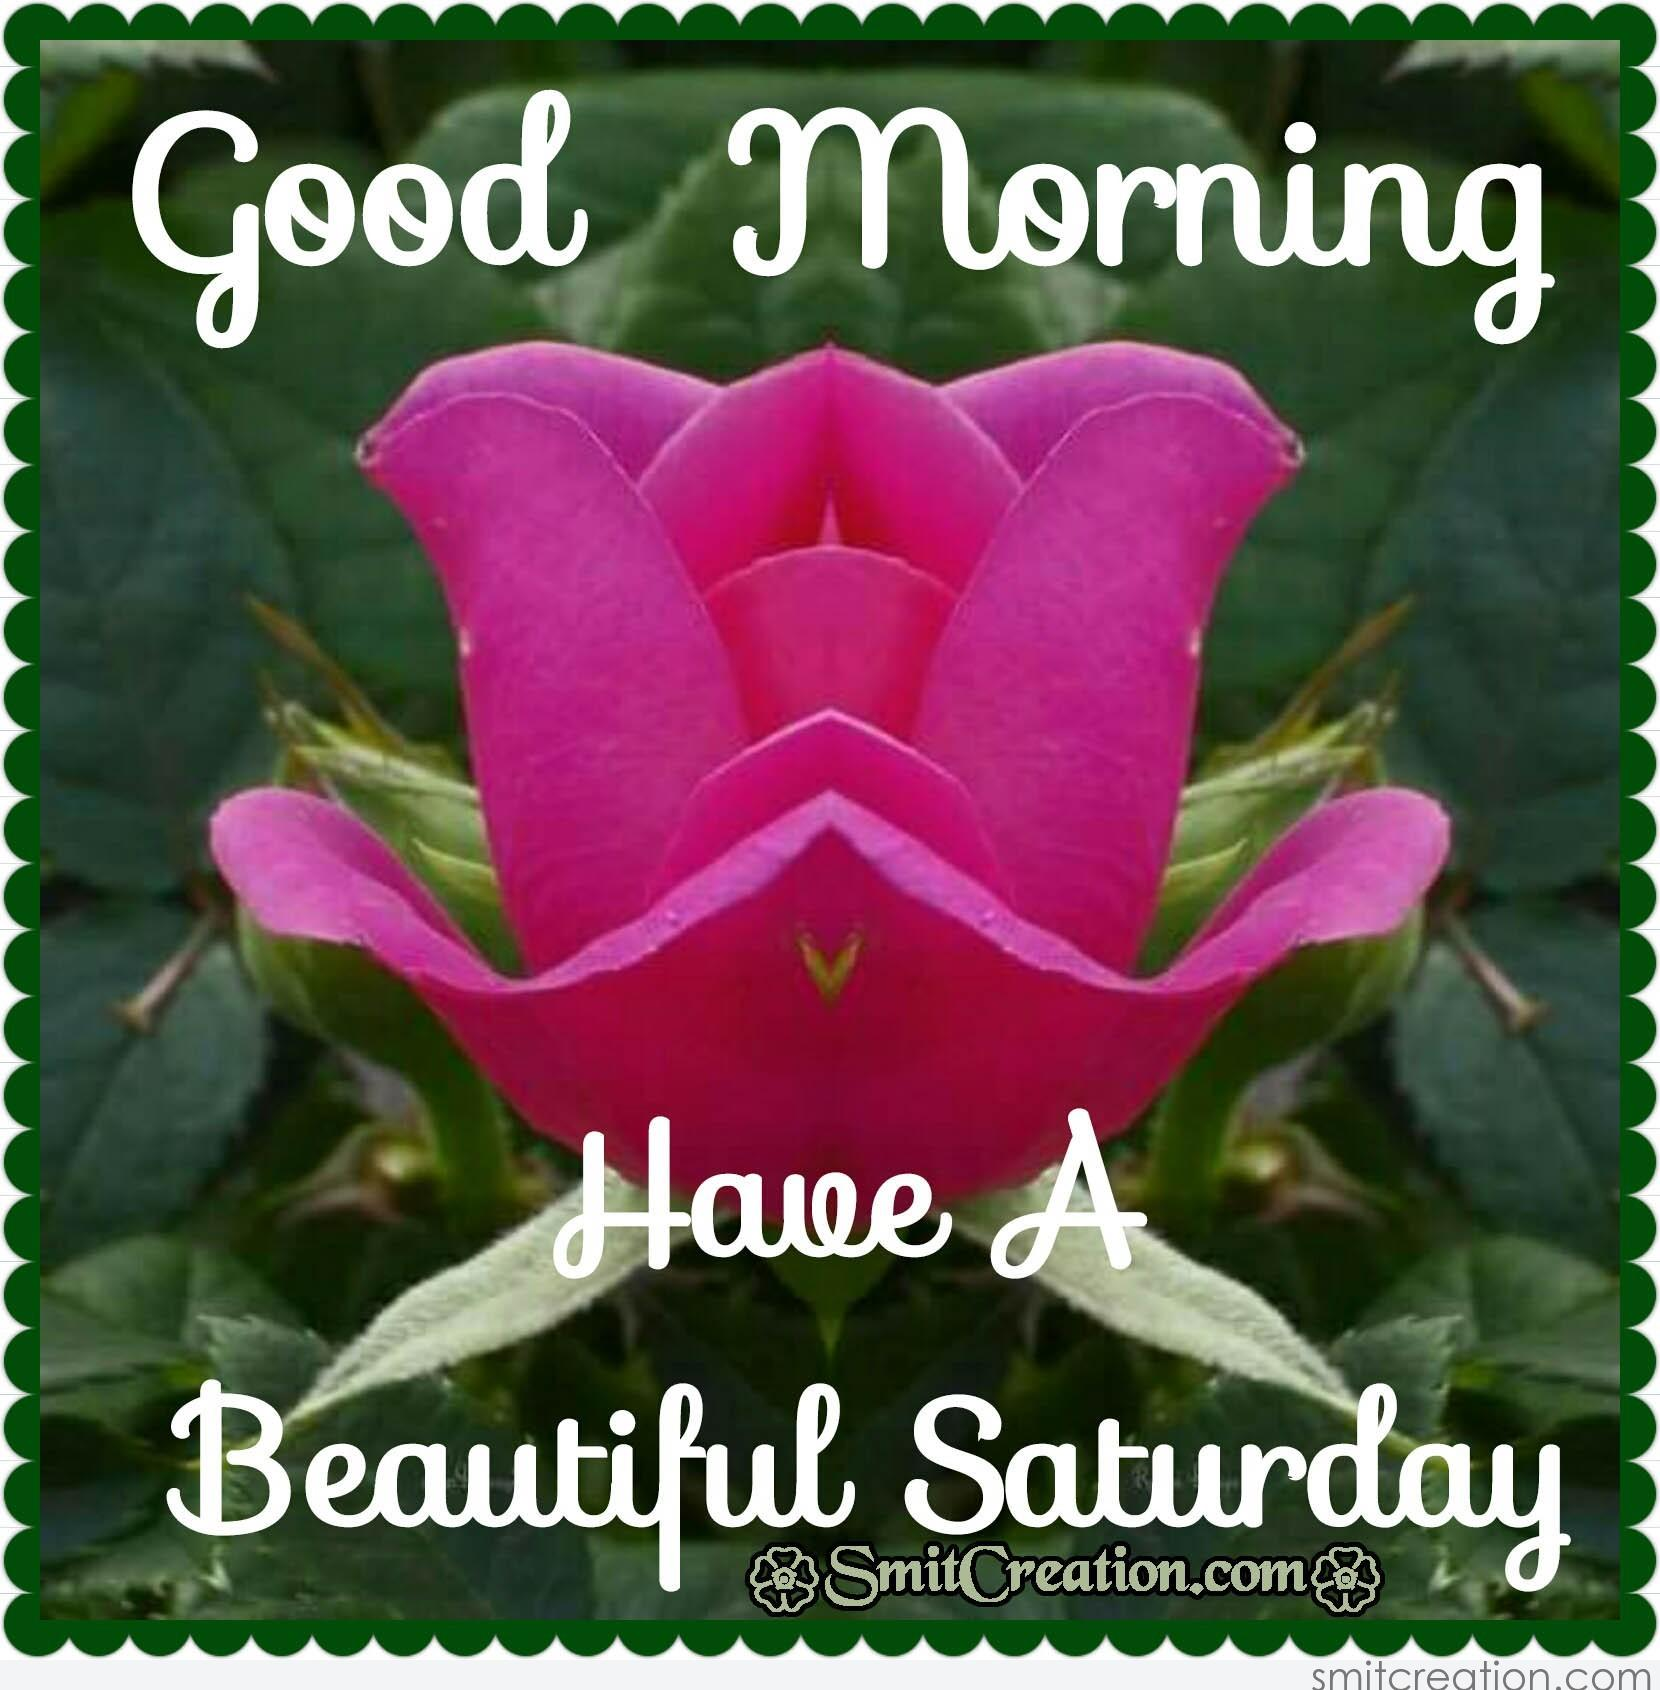 Good Morning Have A Beautiful Saturday Smitcreationcom